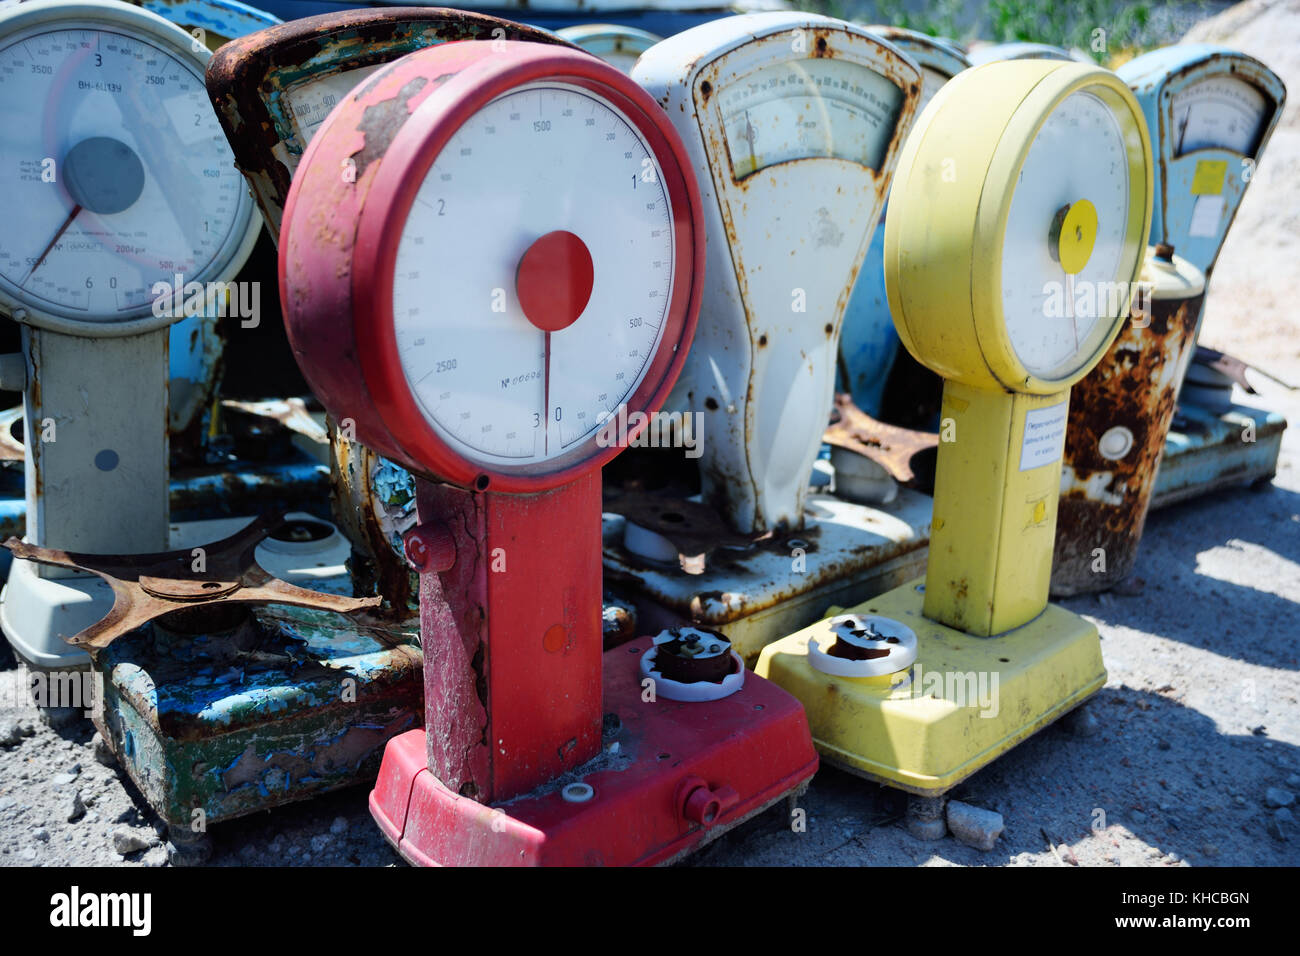 old rusty vintage scales - Stock Image